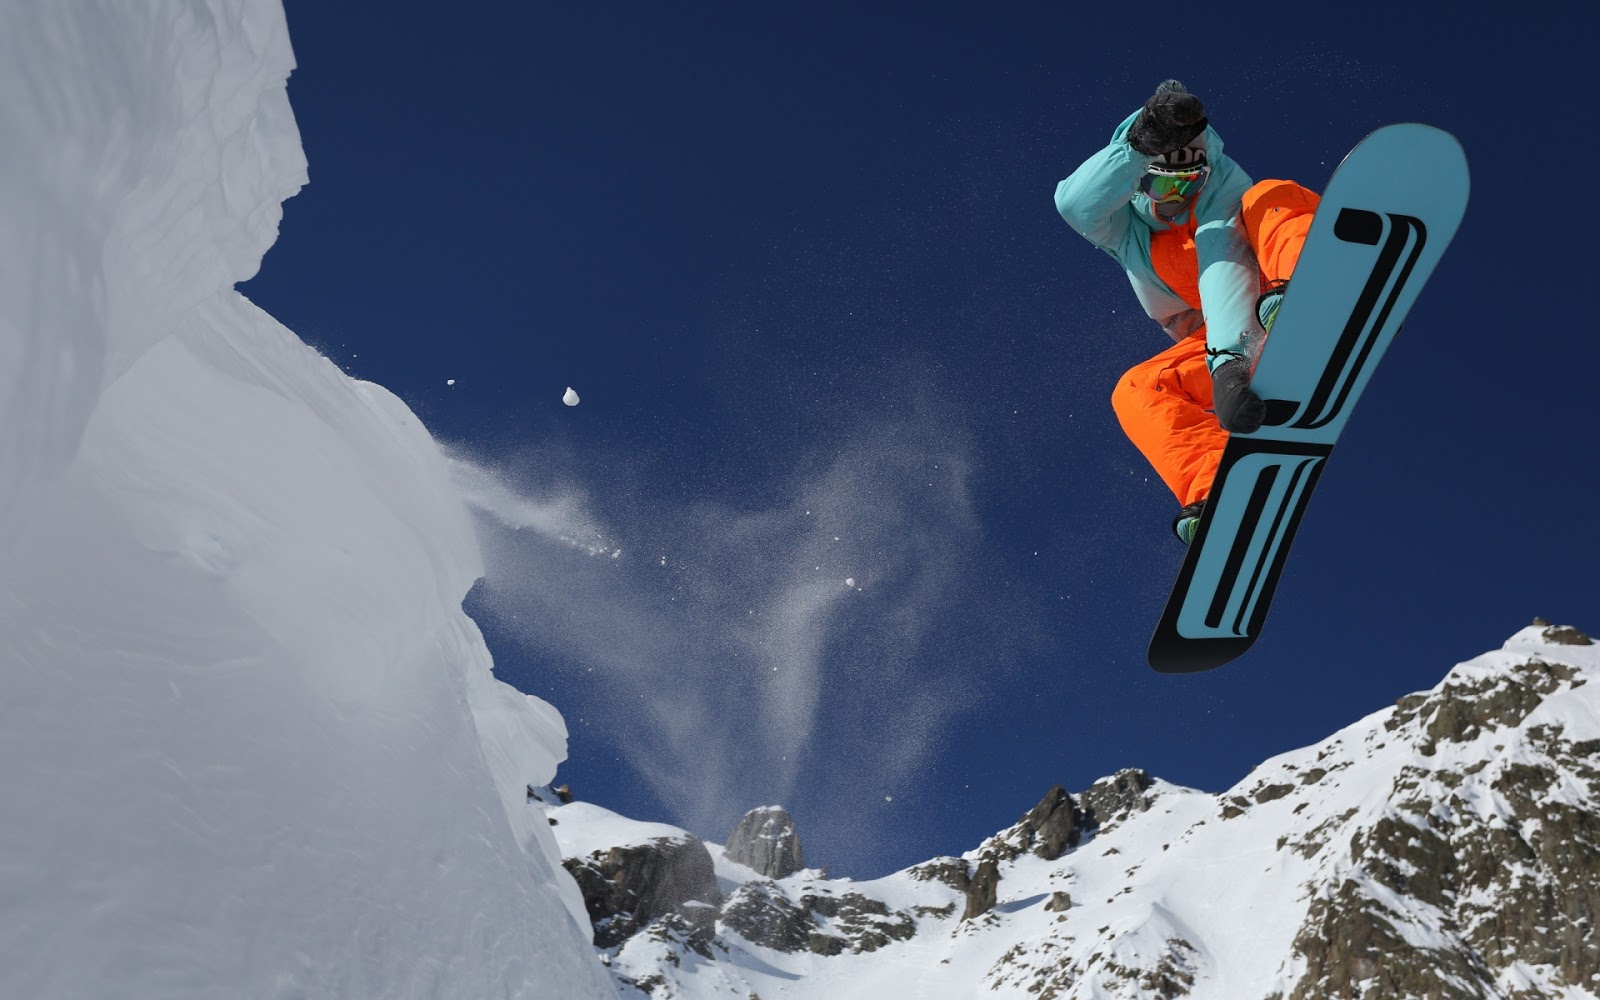 snowboard outdoor wallpaper desktop - photo #39